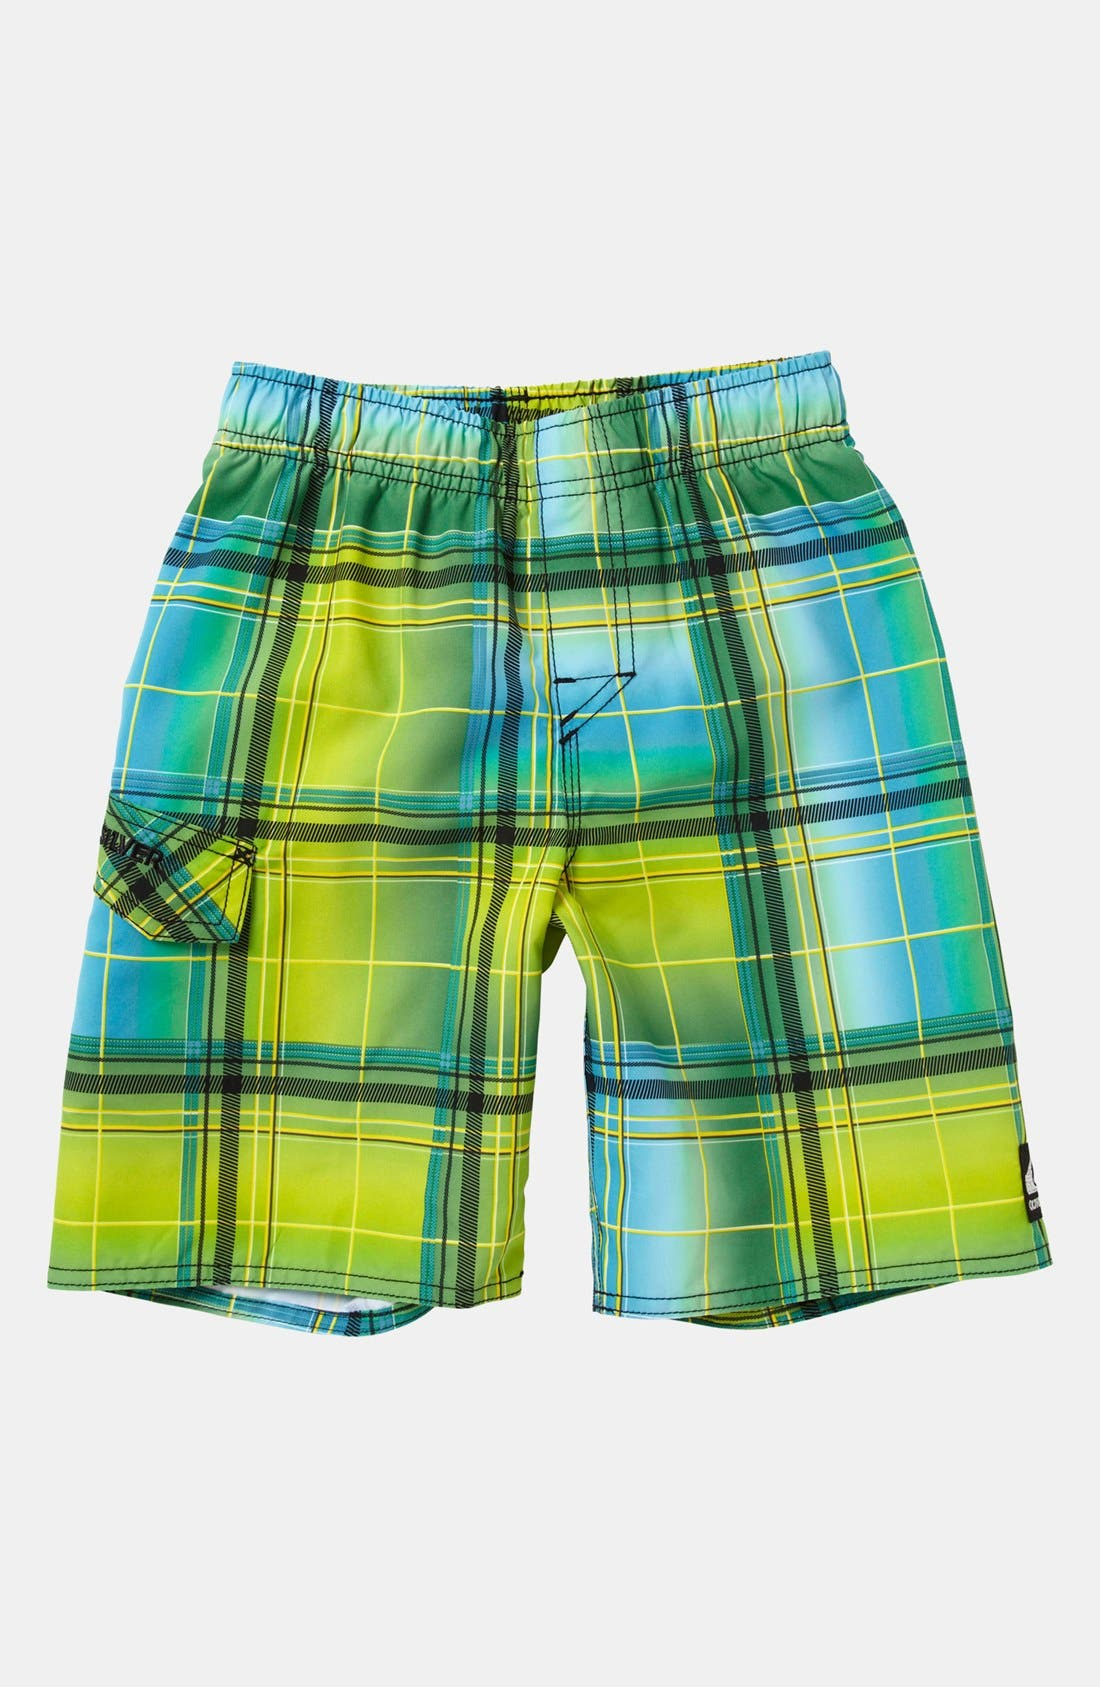 Alternate Image 1 Selected - Quiksilver 'Tronic' Board Shorts (Toddler Boys)